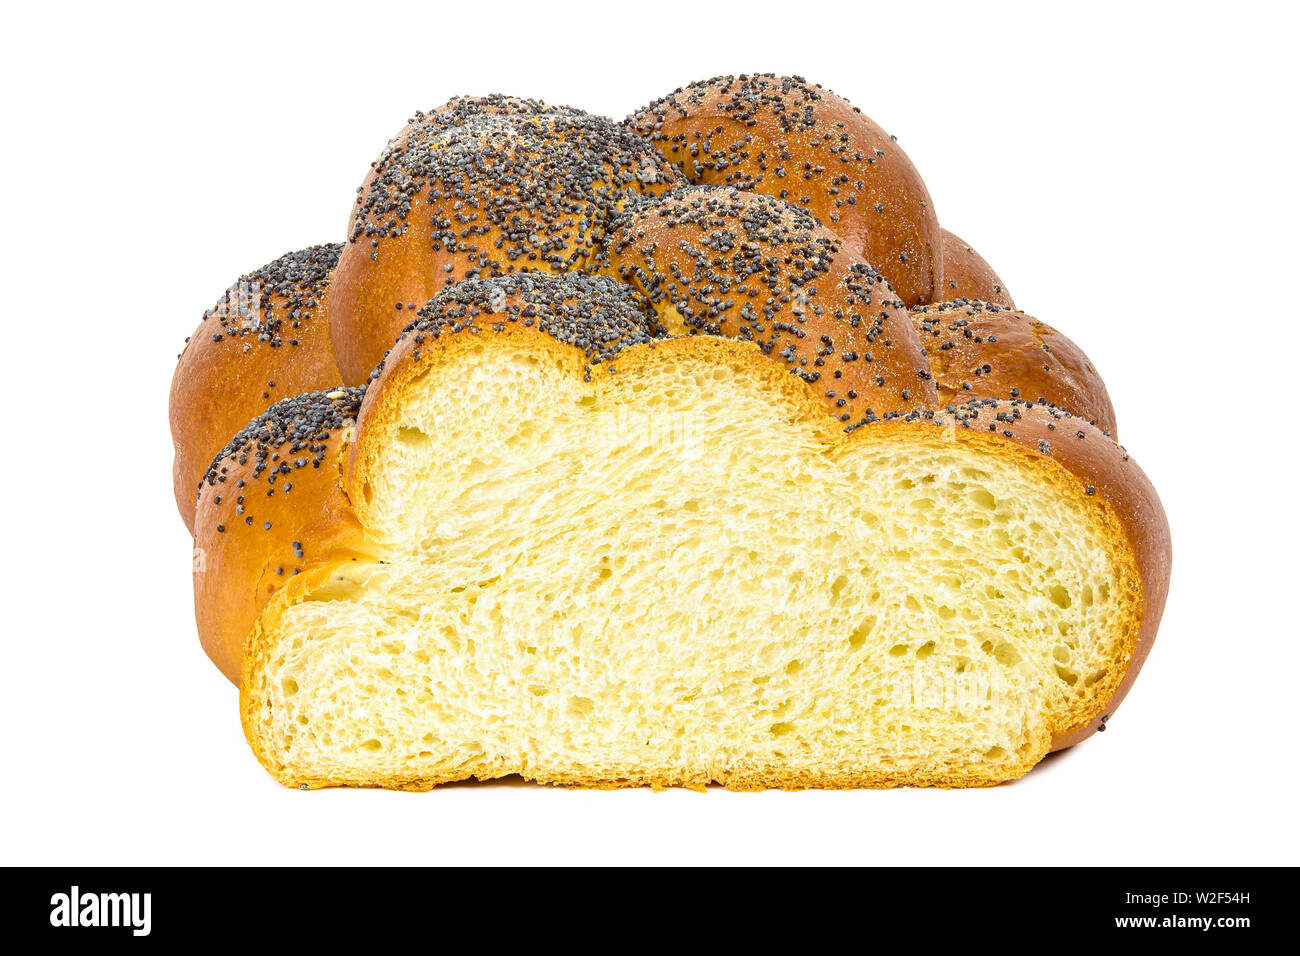 Fresh sliced challah bread isolated on white background with clipping path Stock Photo